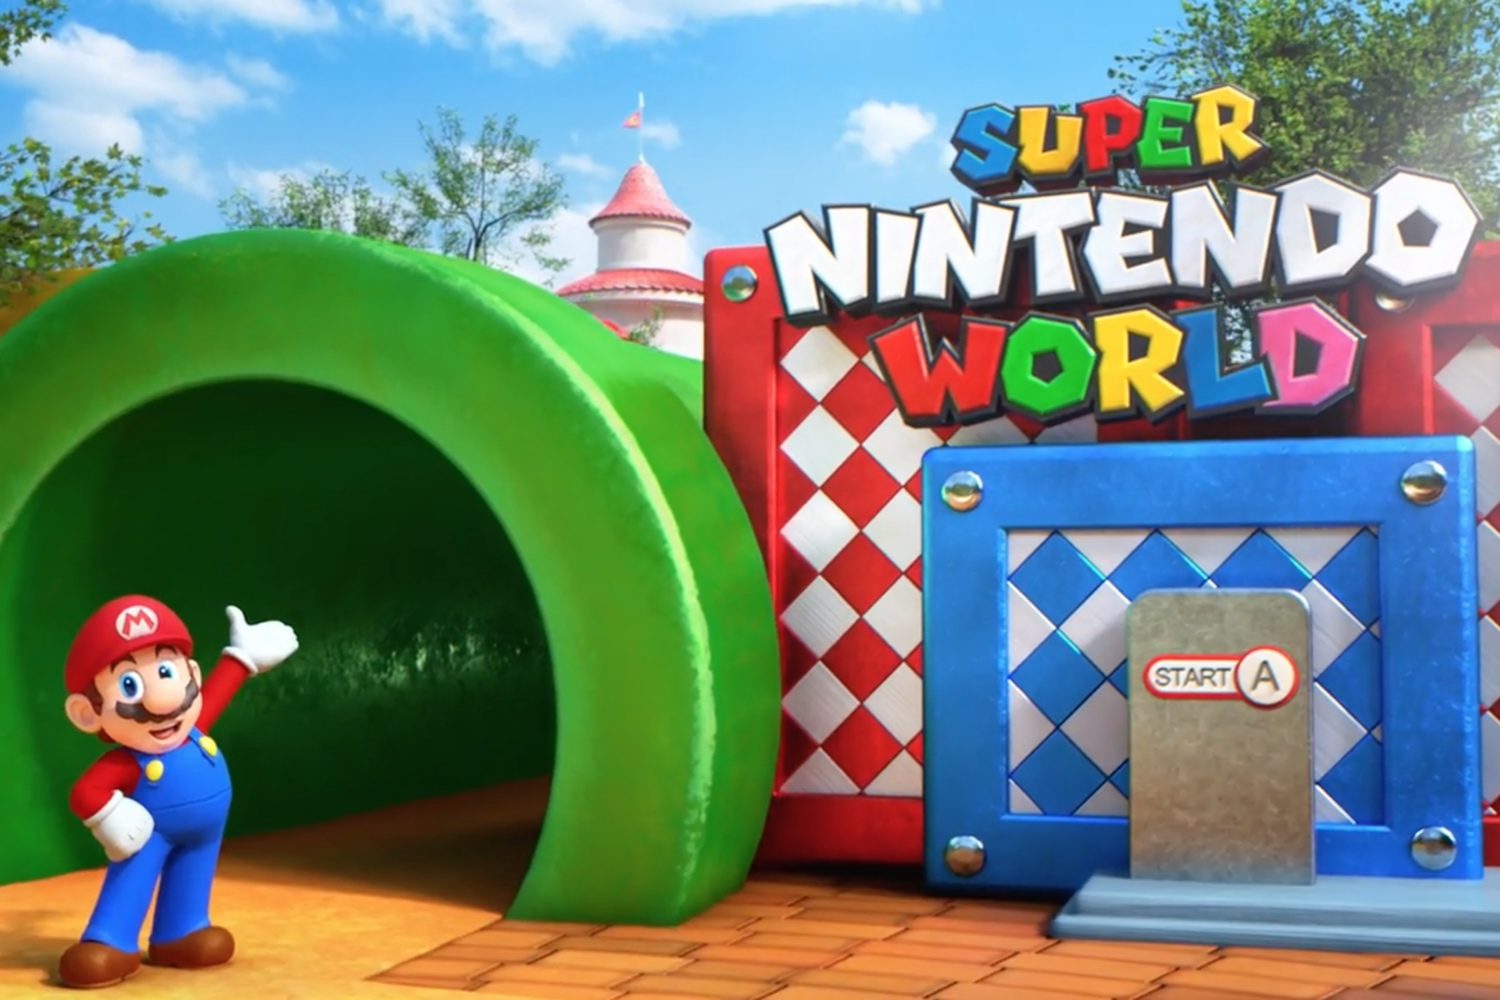 Here's what to expect from Super Nintendo World theme park